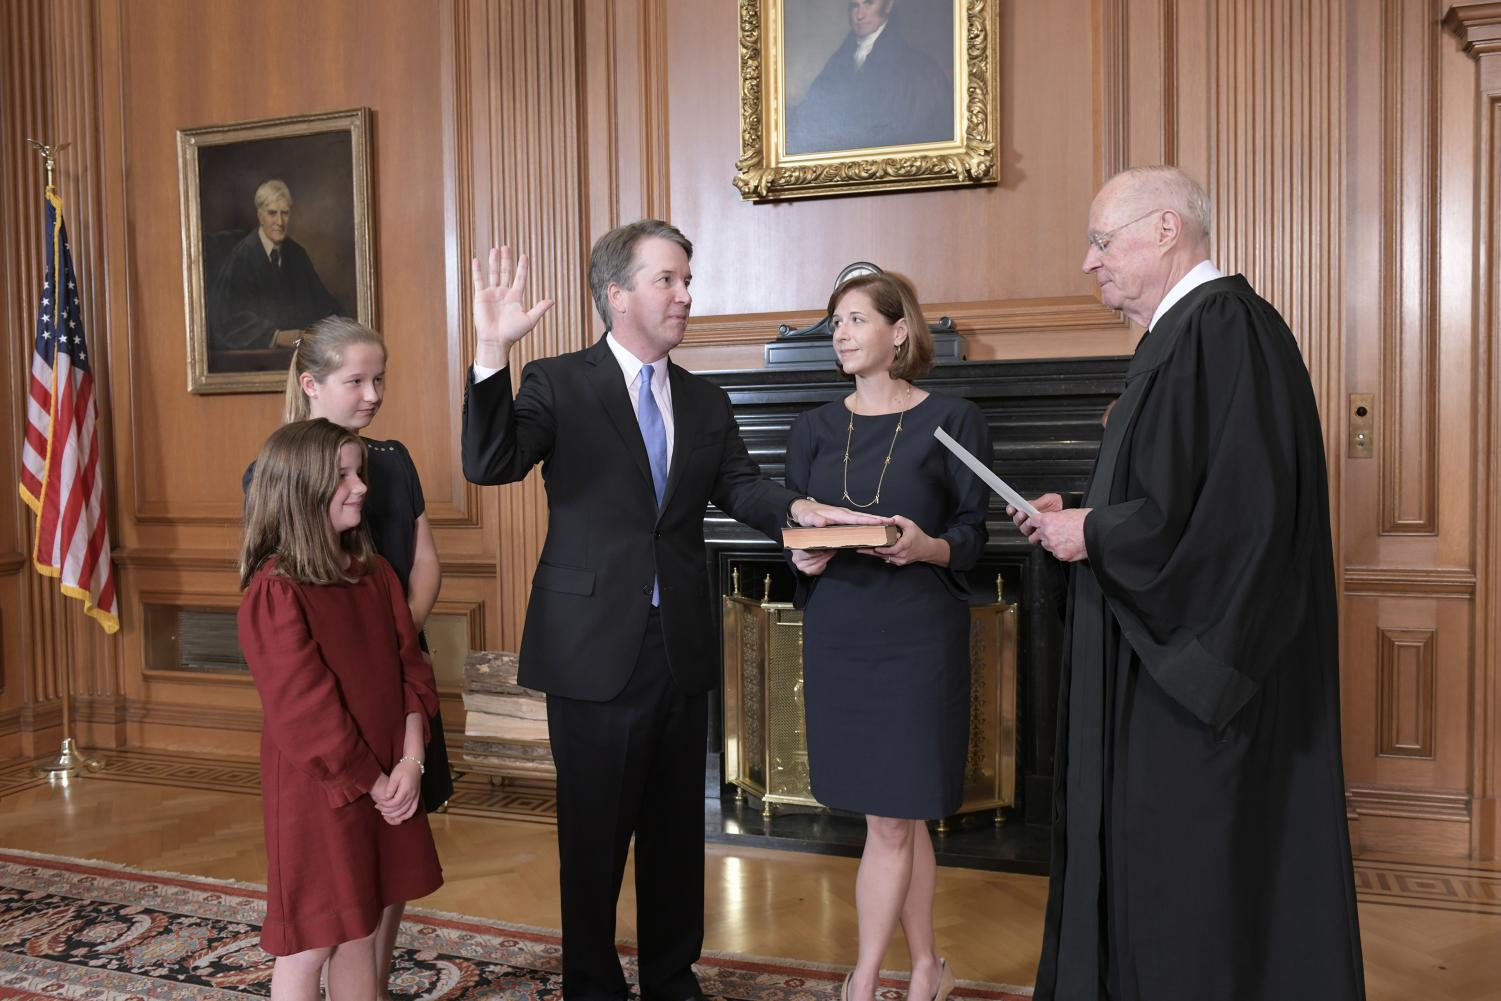 Retired Justice Anthony M. Kennedy administers the Judicial Oath to Judge Brett M. Kavanaugh in the Justices' Conference Room at the Supreme Court Building on Oct. 6, 2018 in Washington, D.C. Mrs. Ashley Kavanaugh holds the Bible. (Fred Schilling/Sipa USA/TNS)